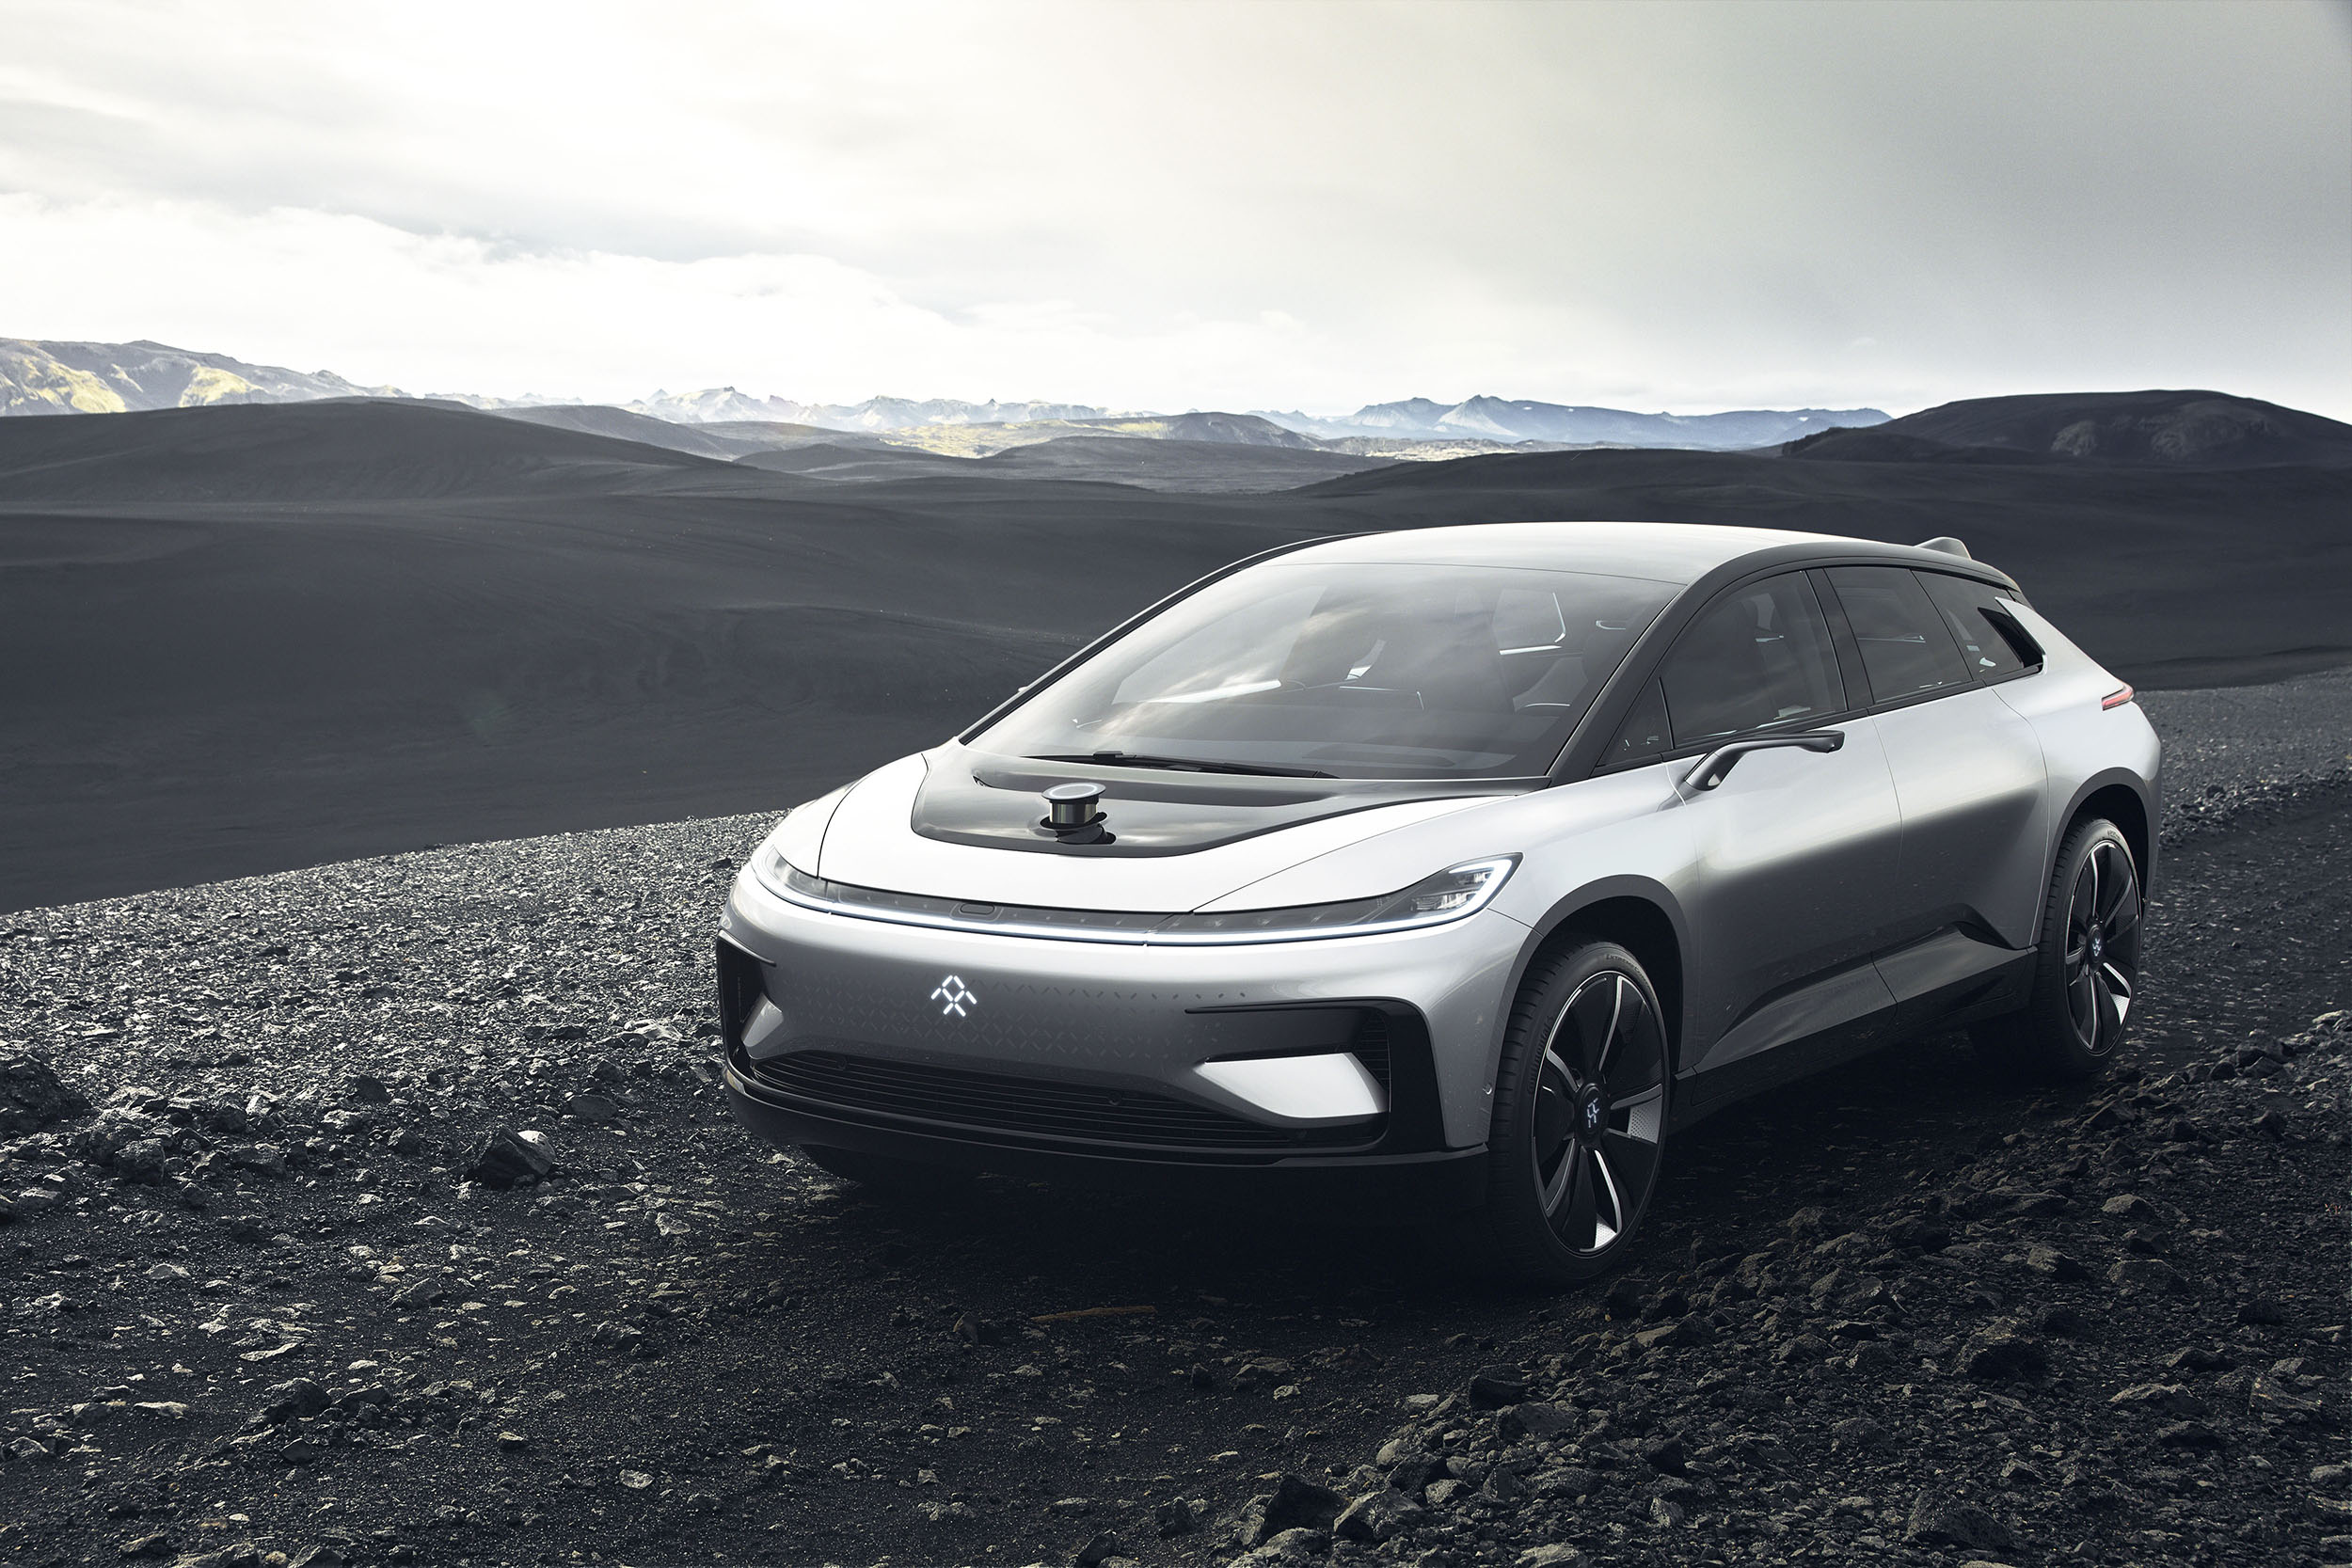 Concept car in Iceland